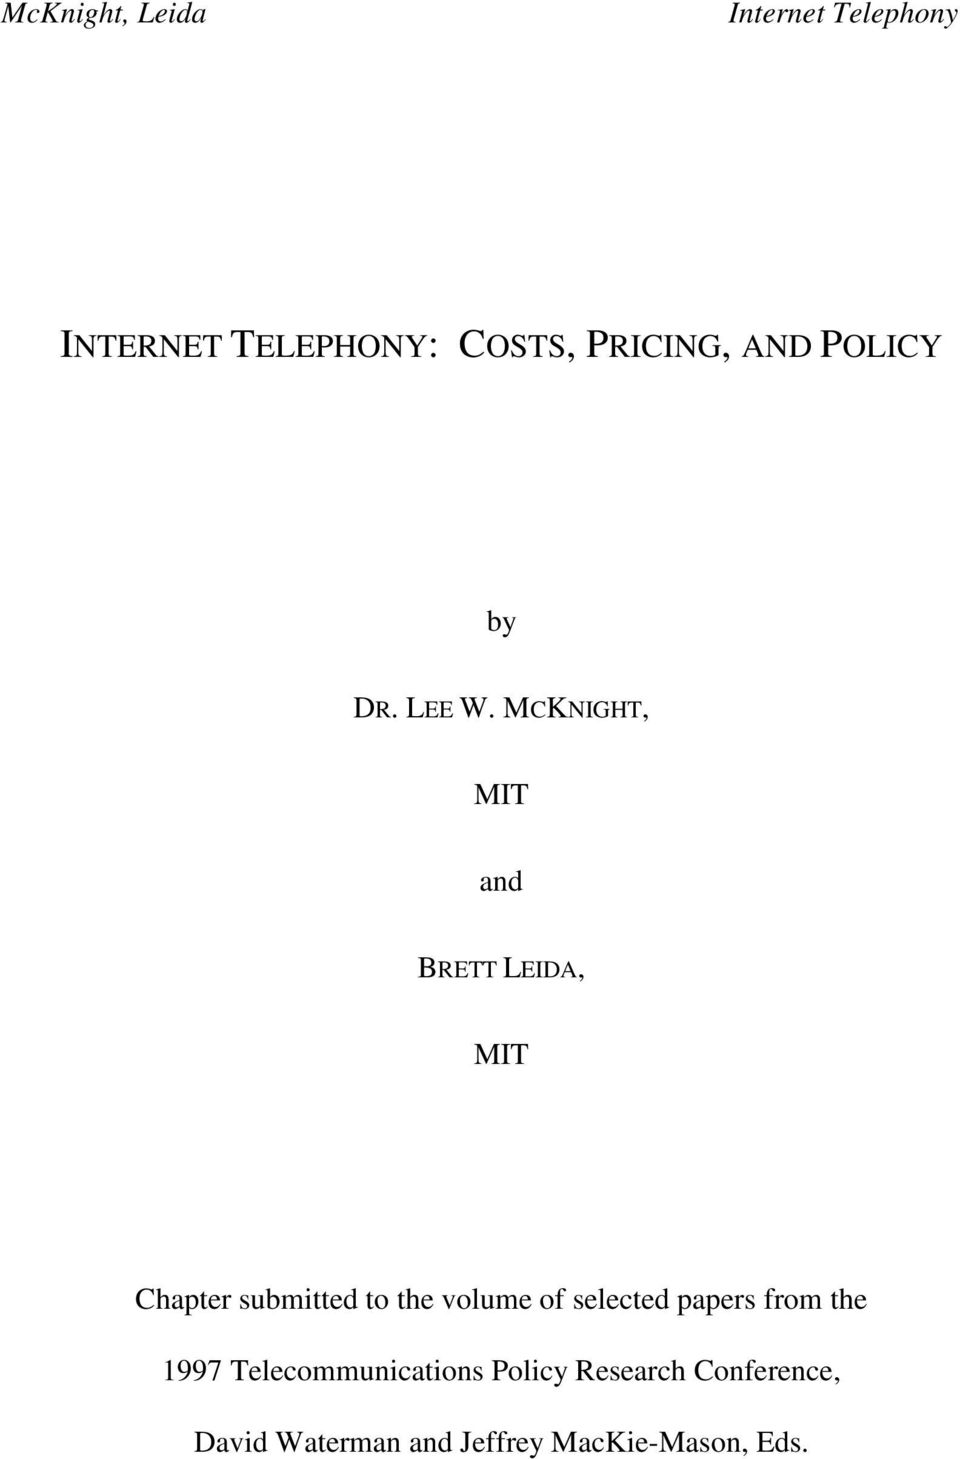 volume of selected papers from the 1997 Telecommunications